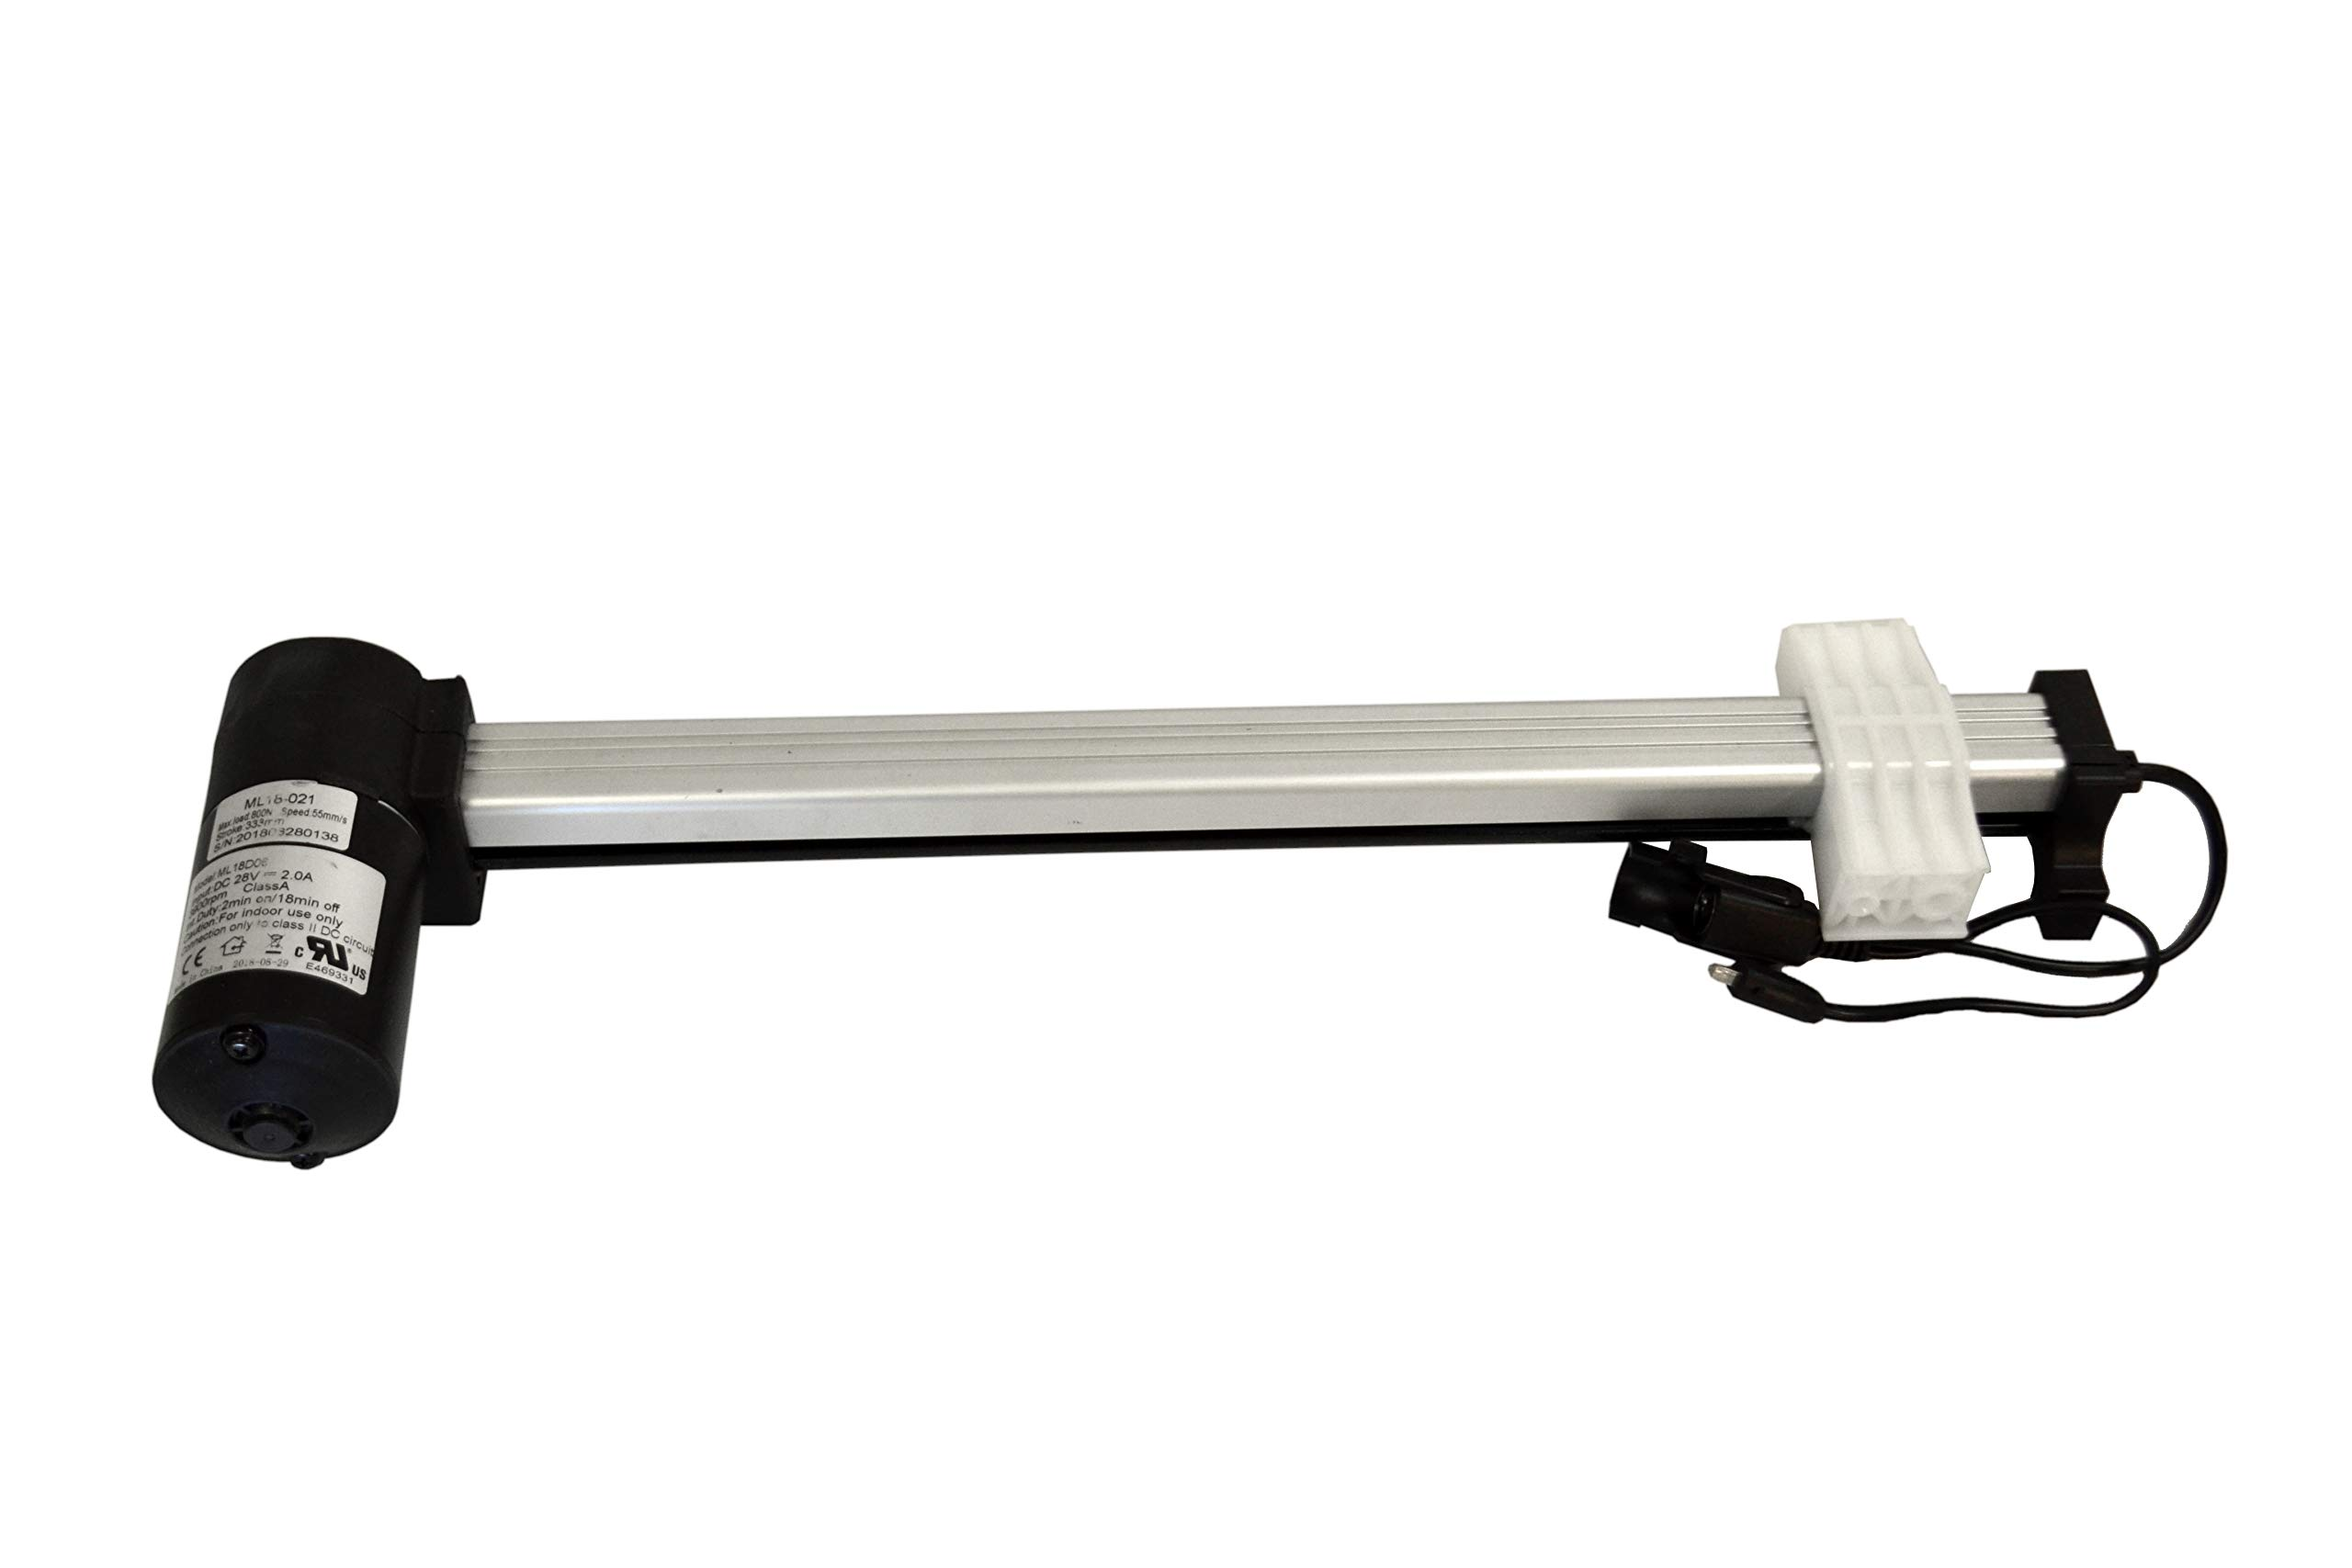 Lift Chair Linear Actuator Motor Replacement 333mm Stroke Replaces Major Brand Motors by Recliner-Handles